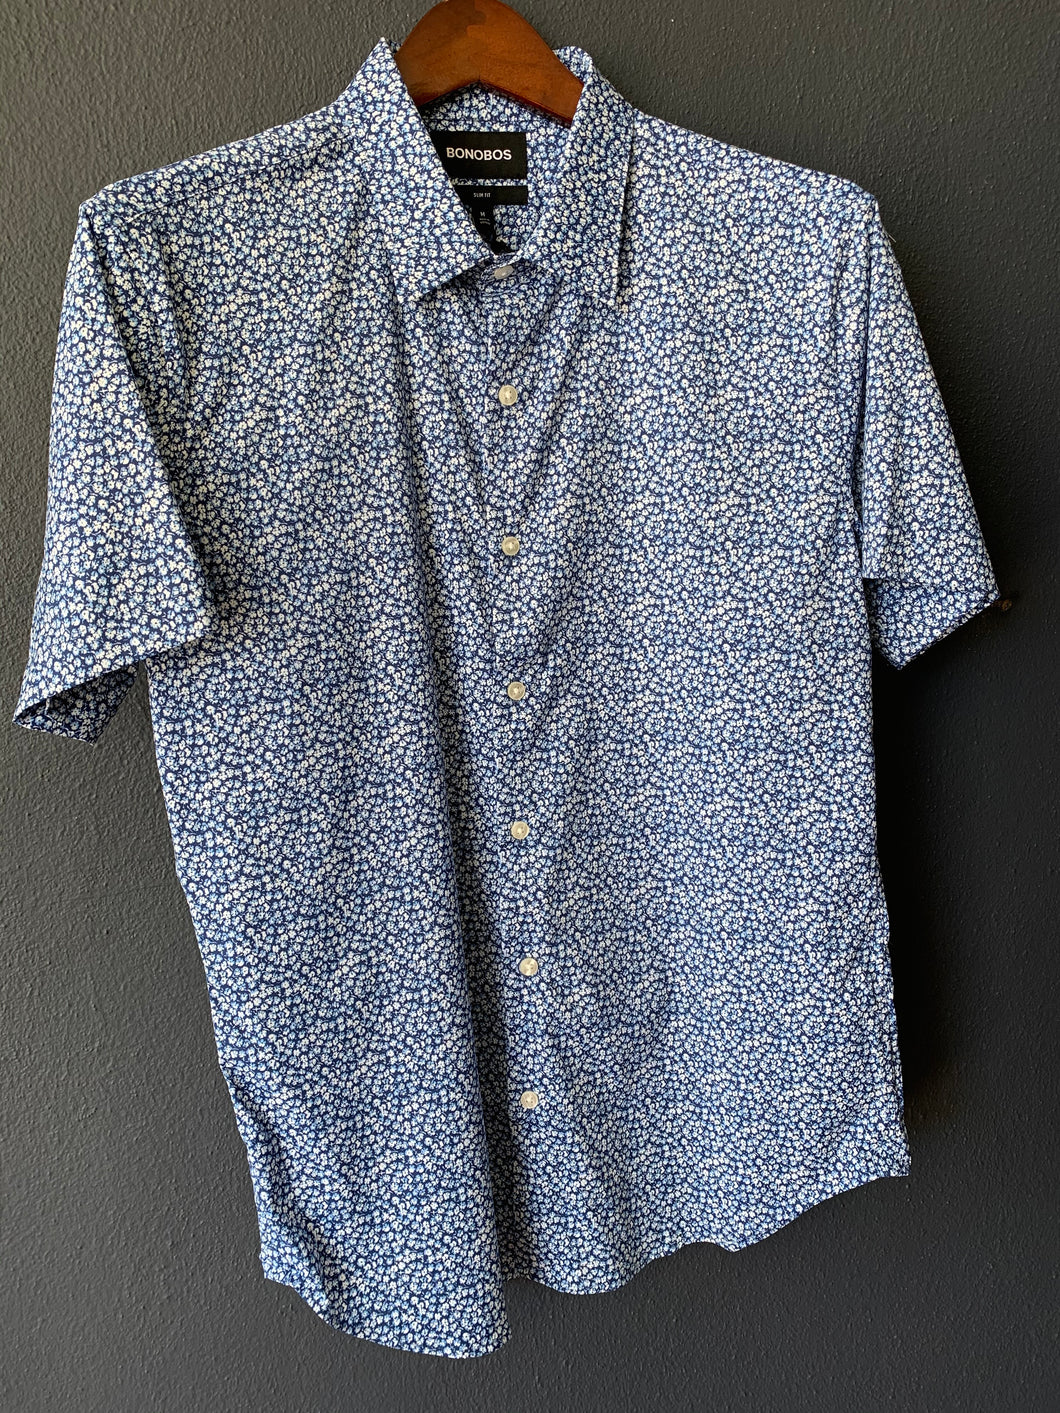 Tech Button Down Stockland Floral Twilight